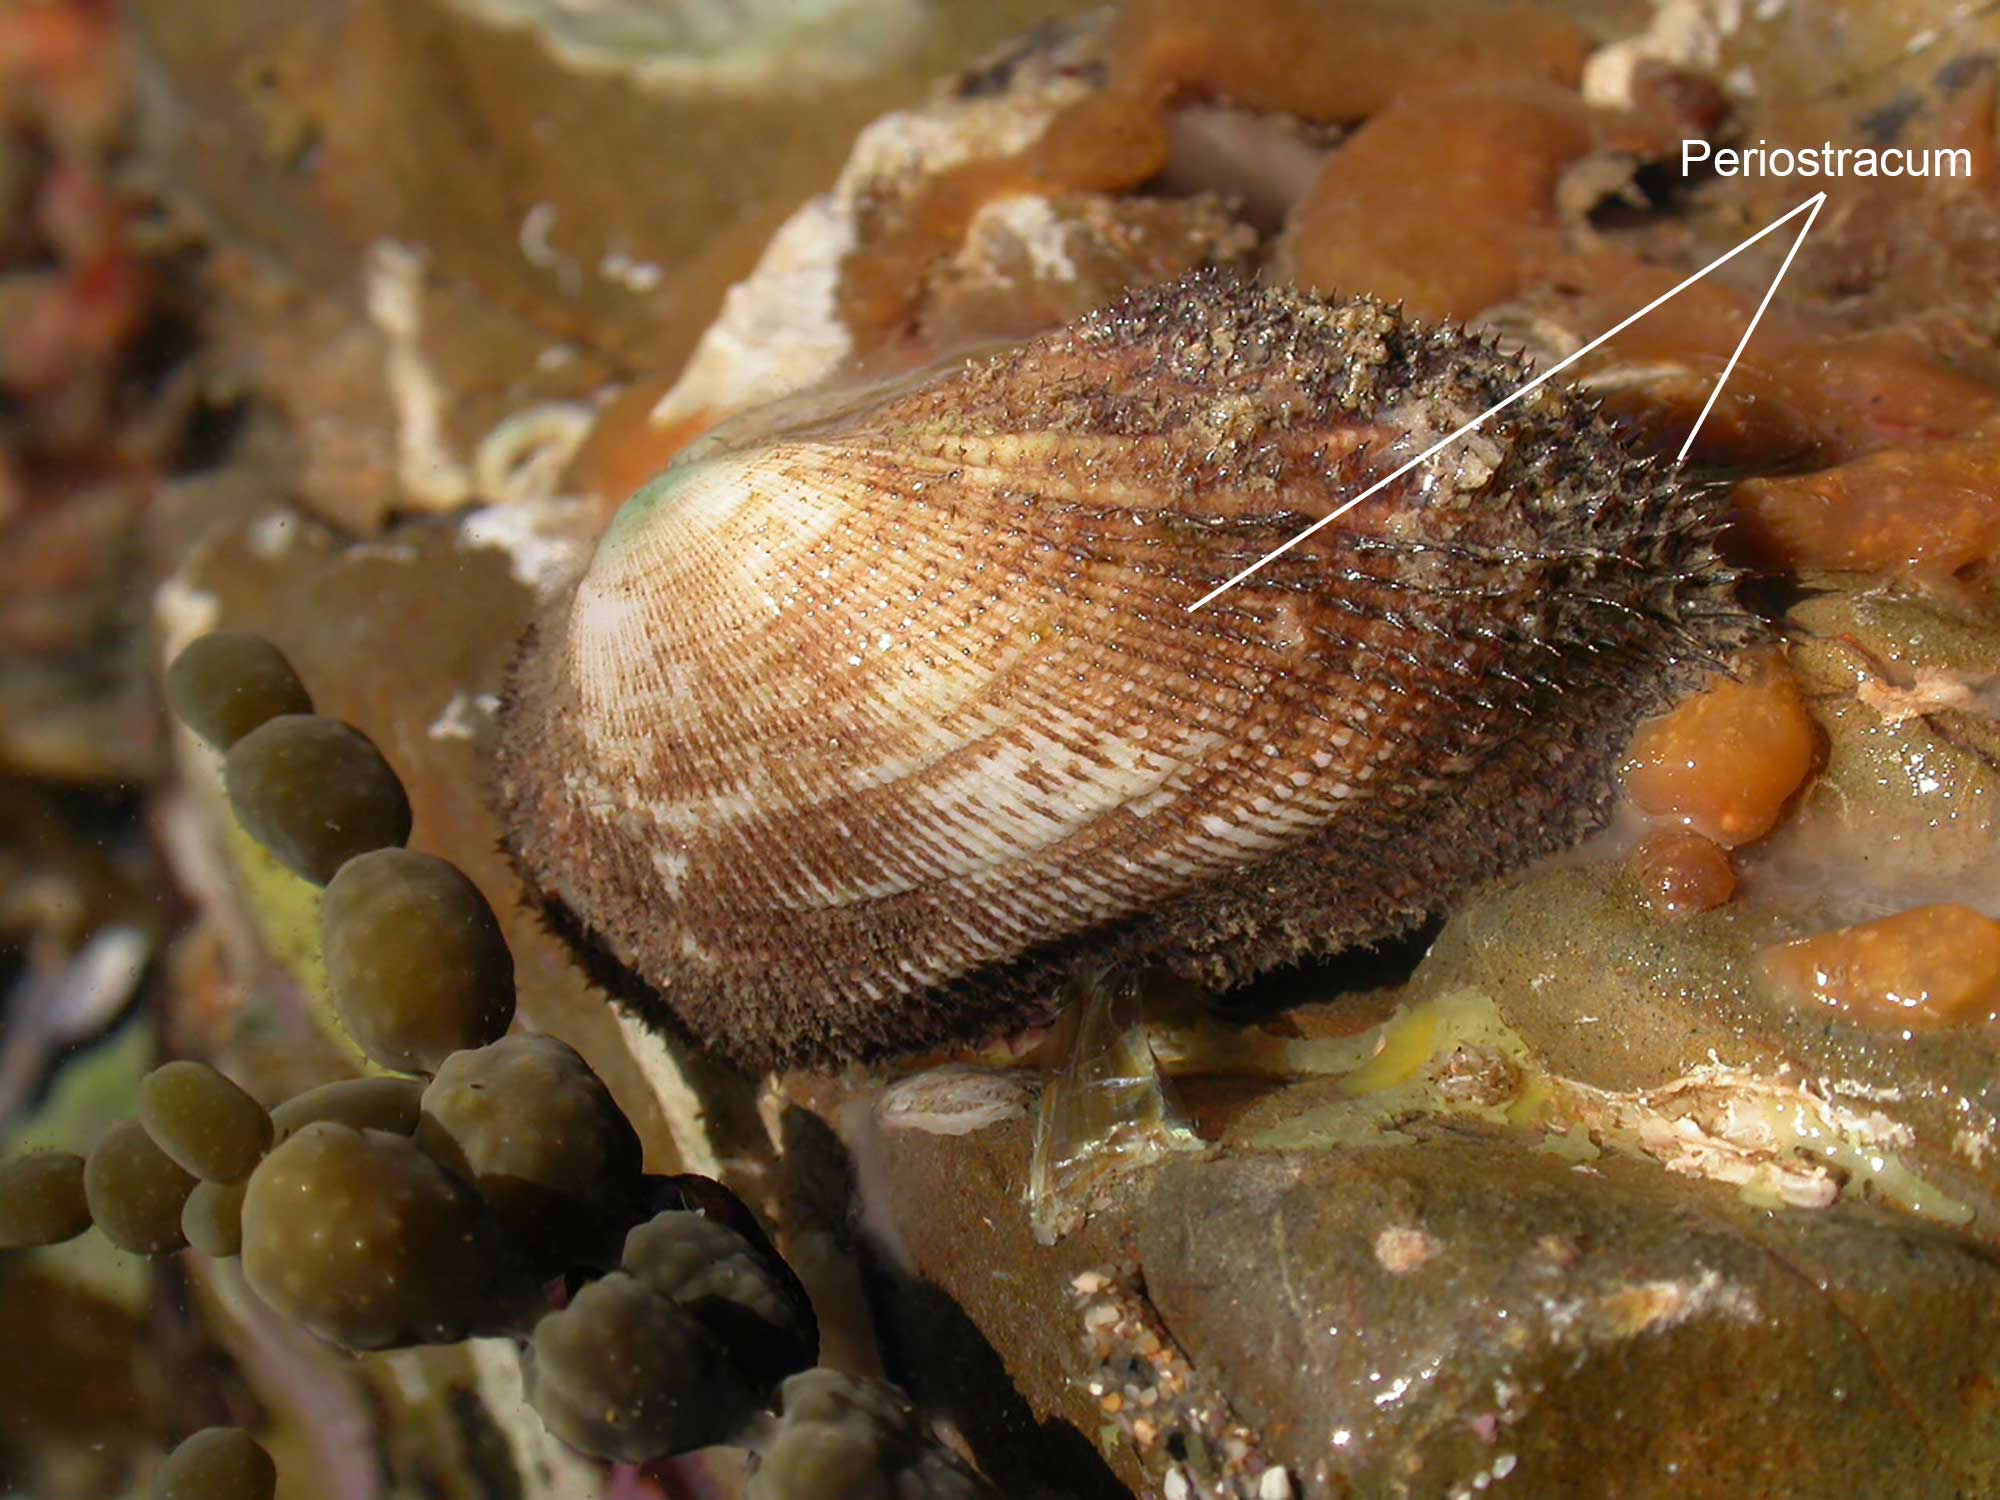 Photograph of a banded ark shell with the periostracum labeled.